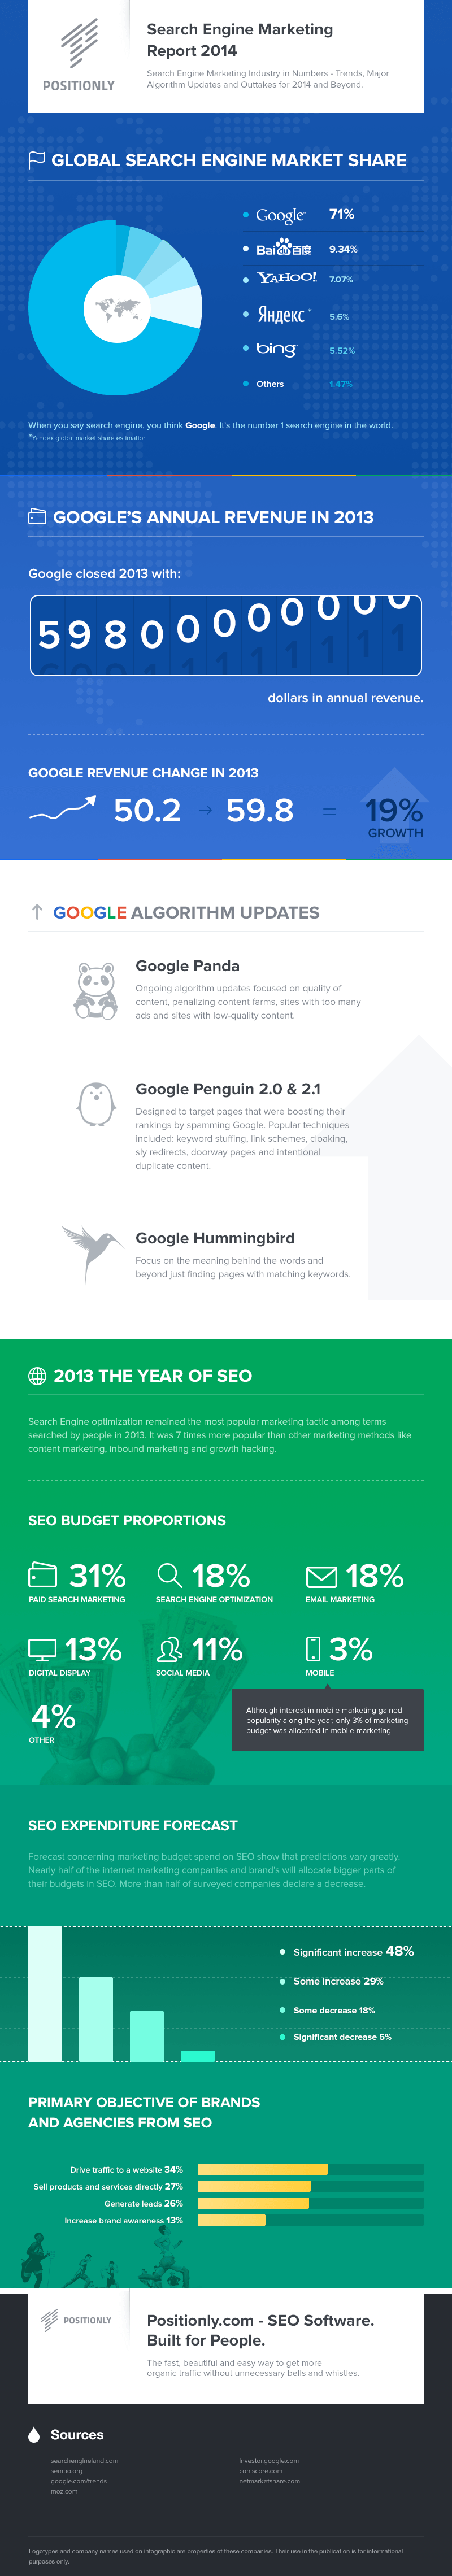 Positionly Search Engine Marketing Industry Report 2014